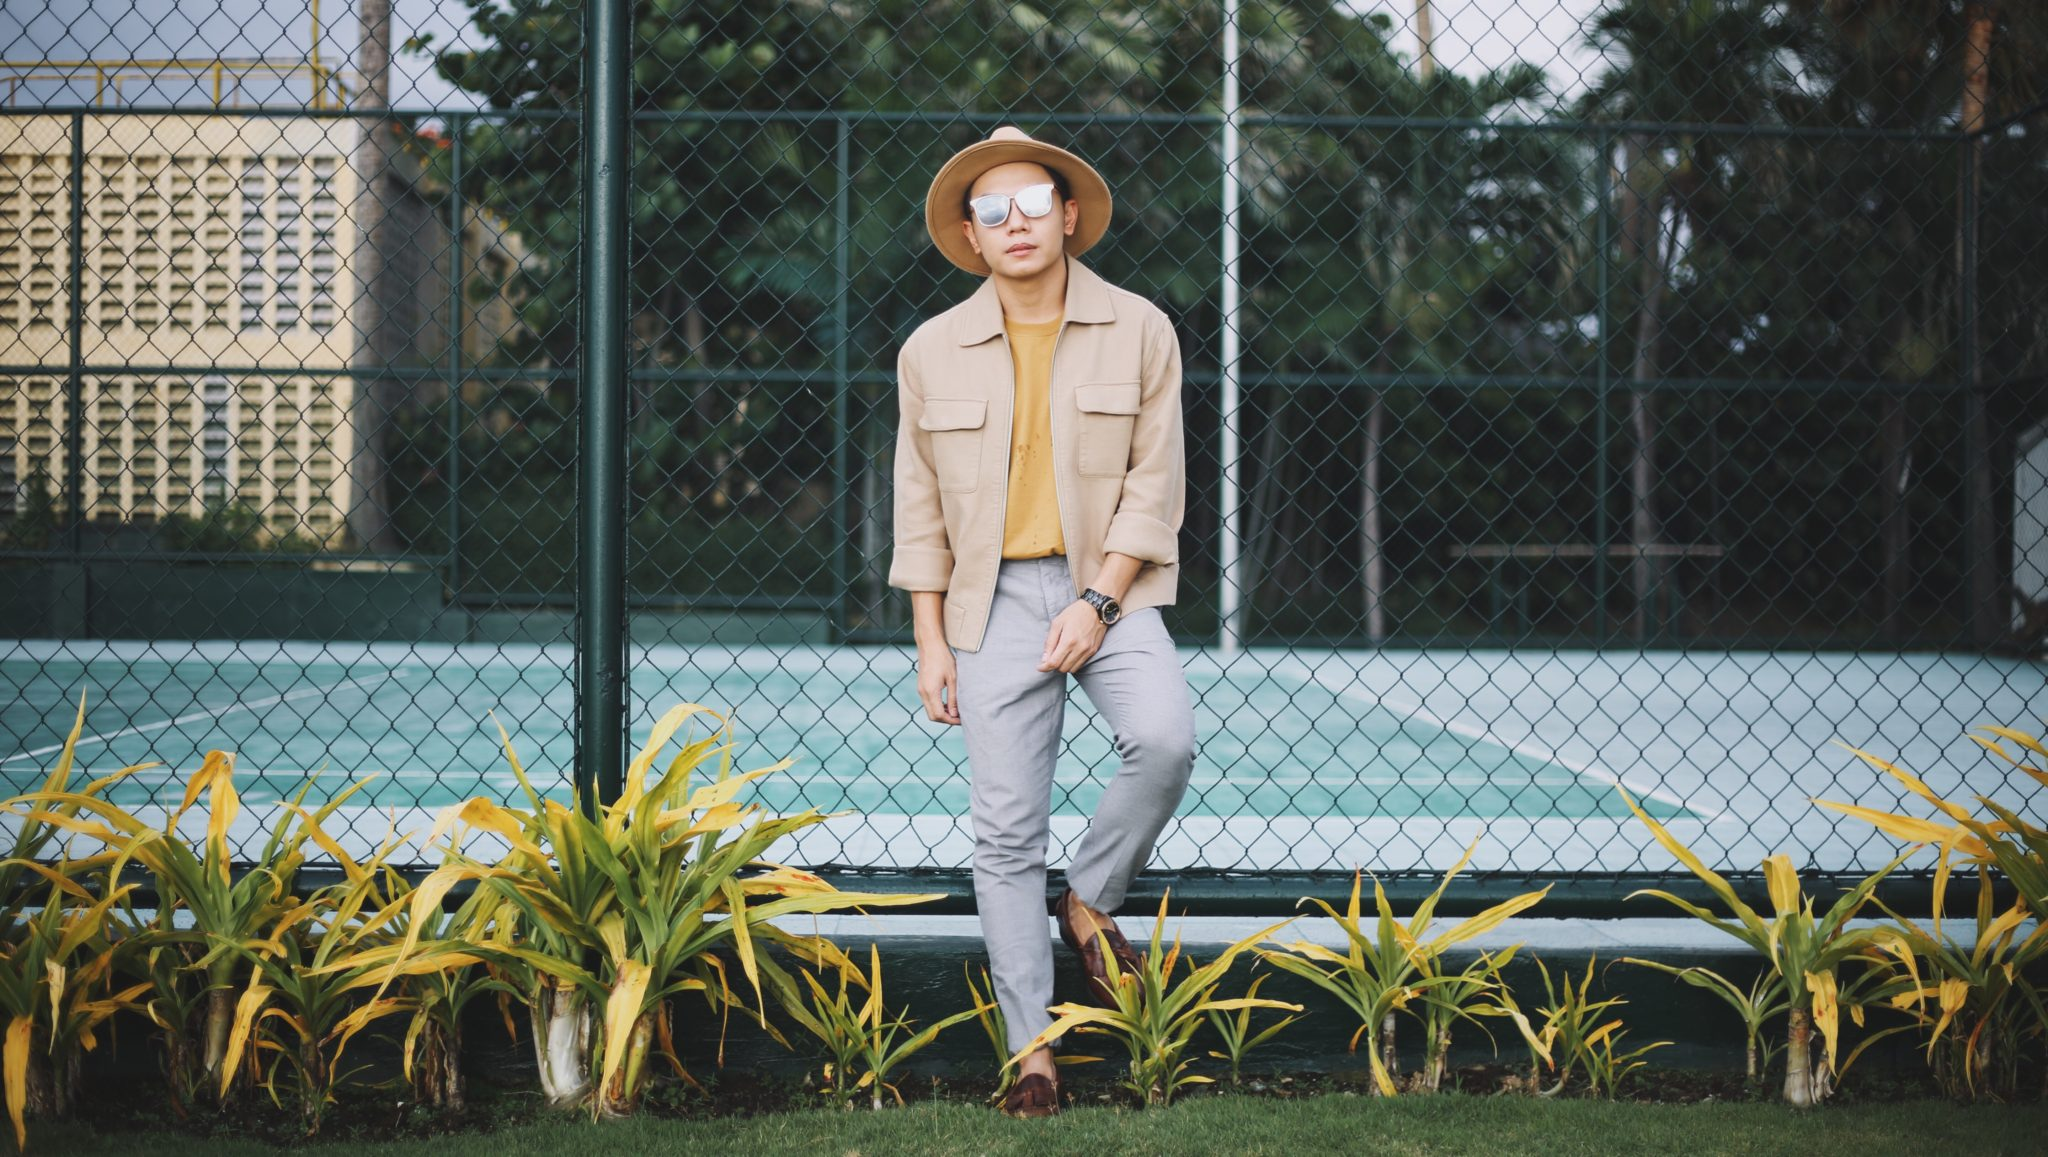 INSTA SPOT: CATCHING UP WITH MIKO CARREON